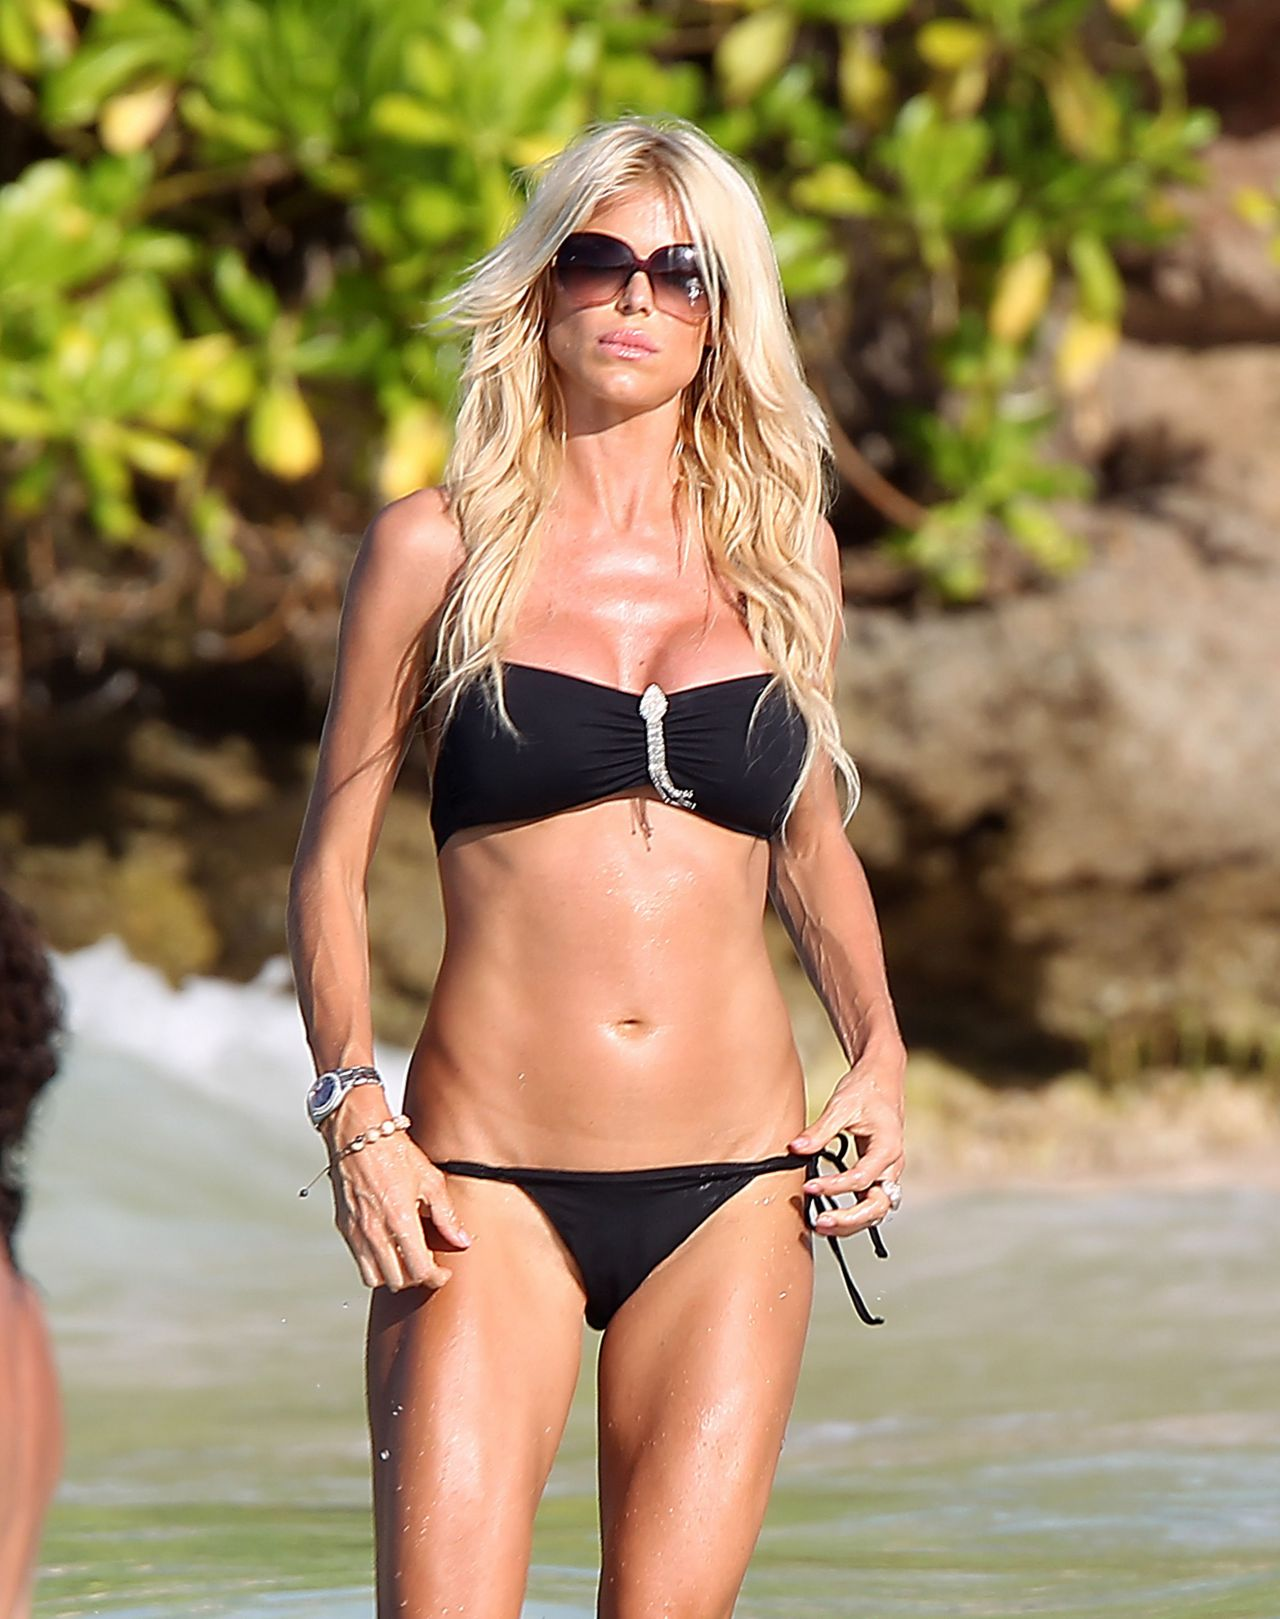 With her slim body and Dark blond hairtype without bra (cup size 36D) on the beach in bikini